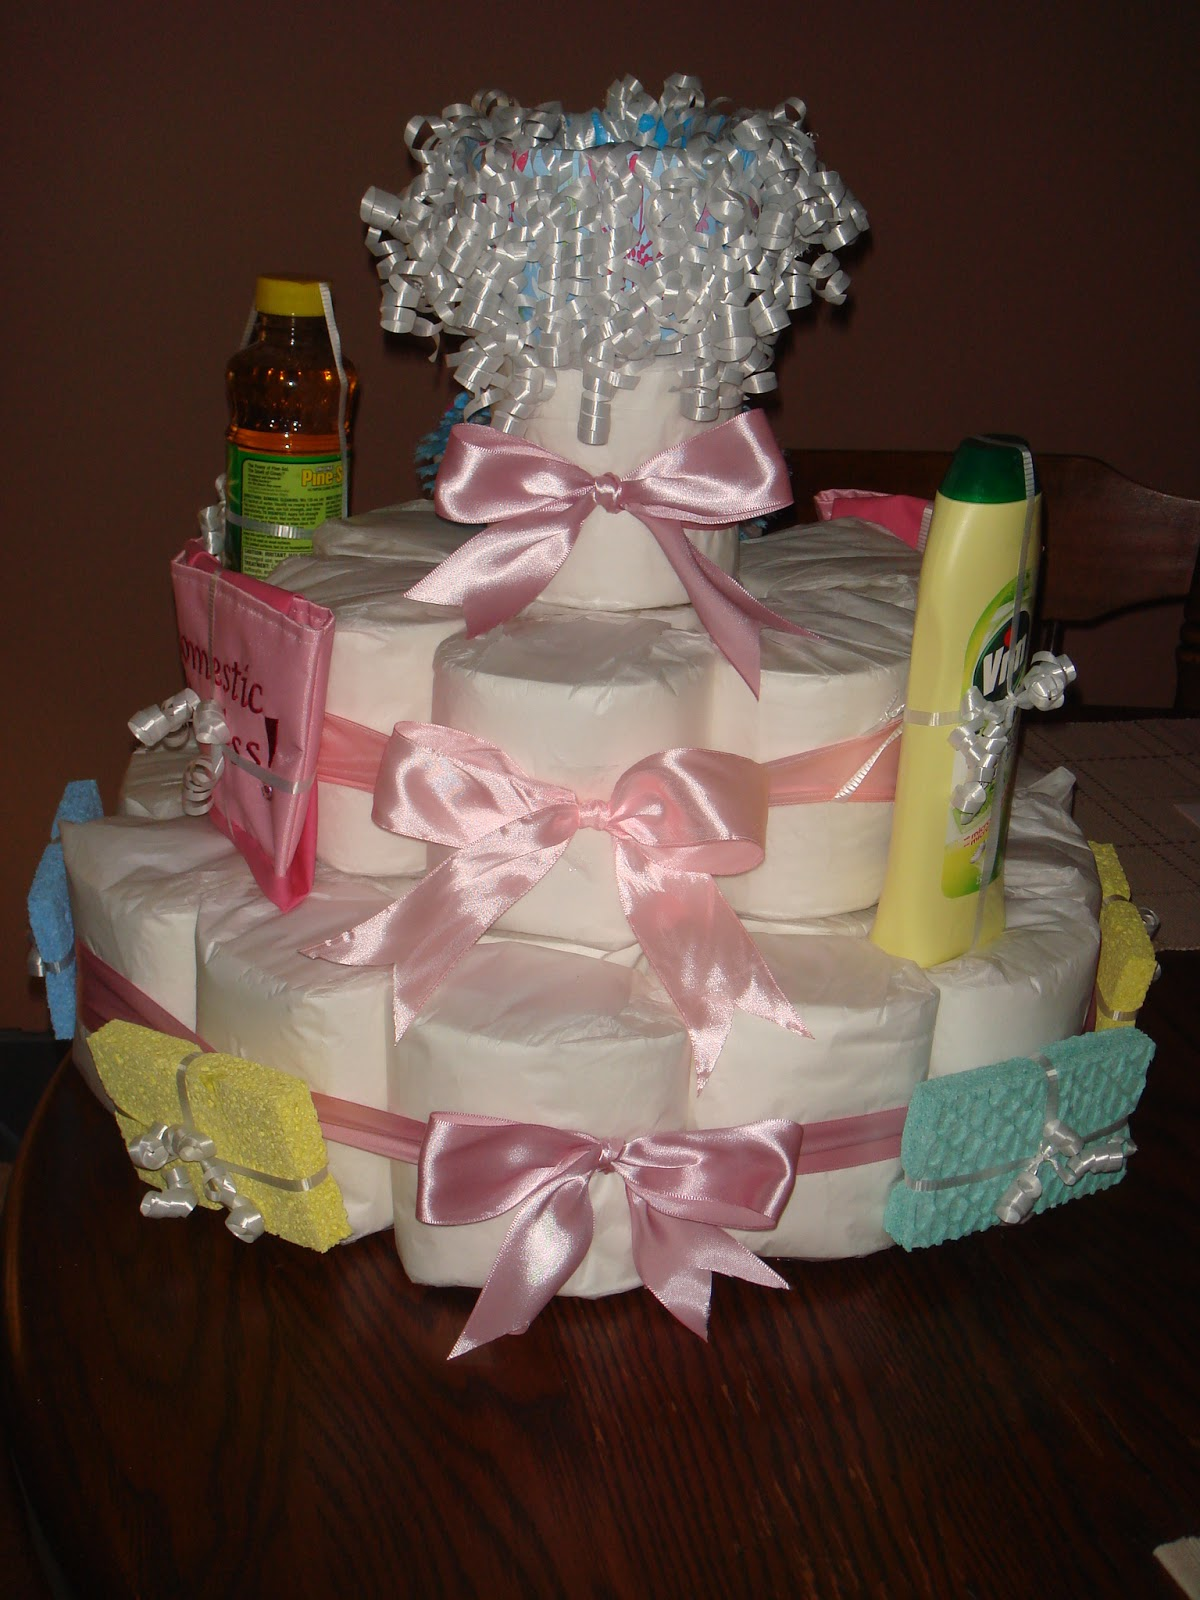 The Crafty Nerd: Toilet Paper Cake - Housewarming Present